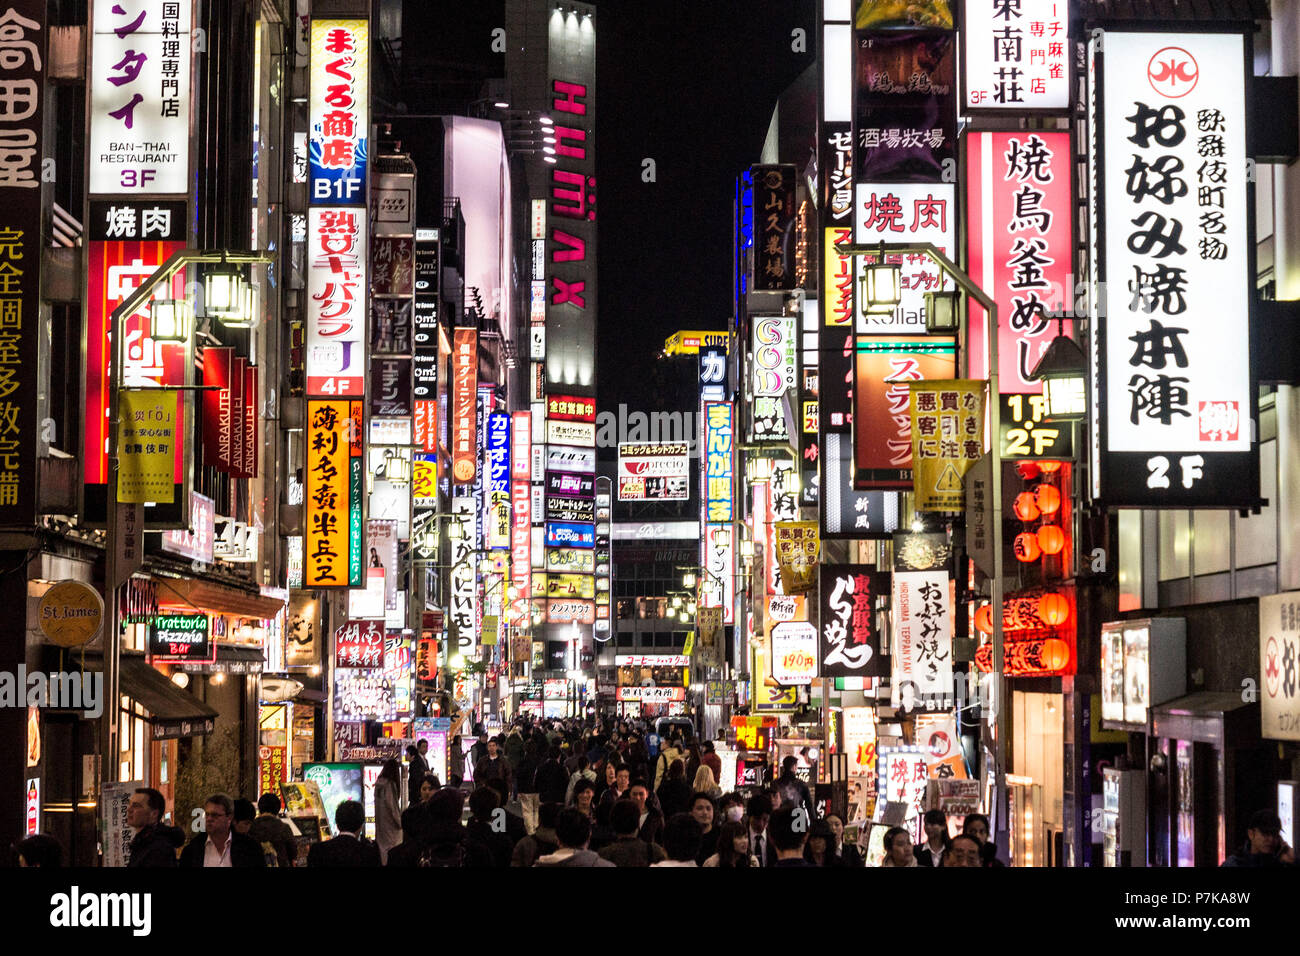 Tokyo's fancy streets at night - Stock Image